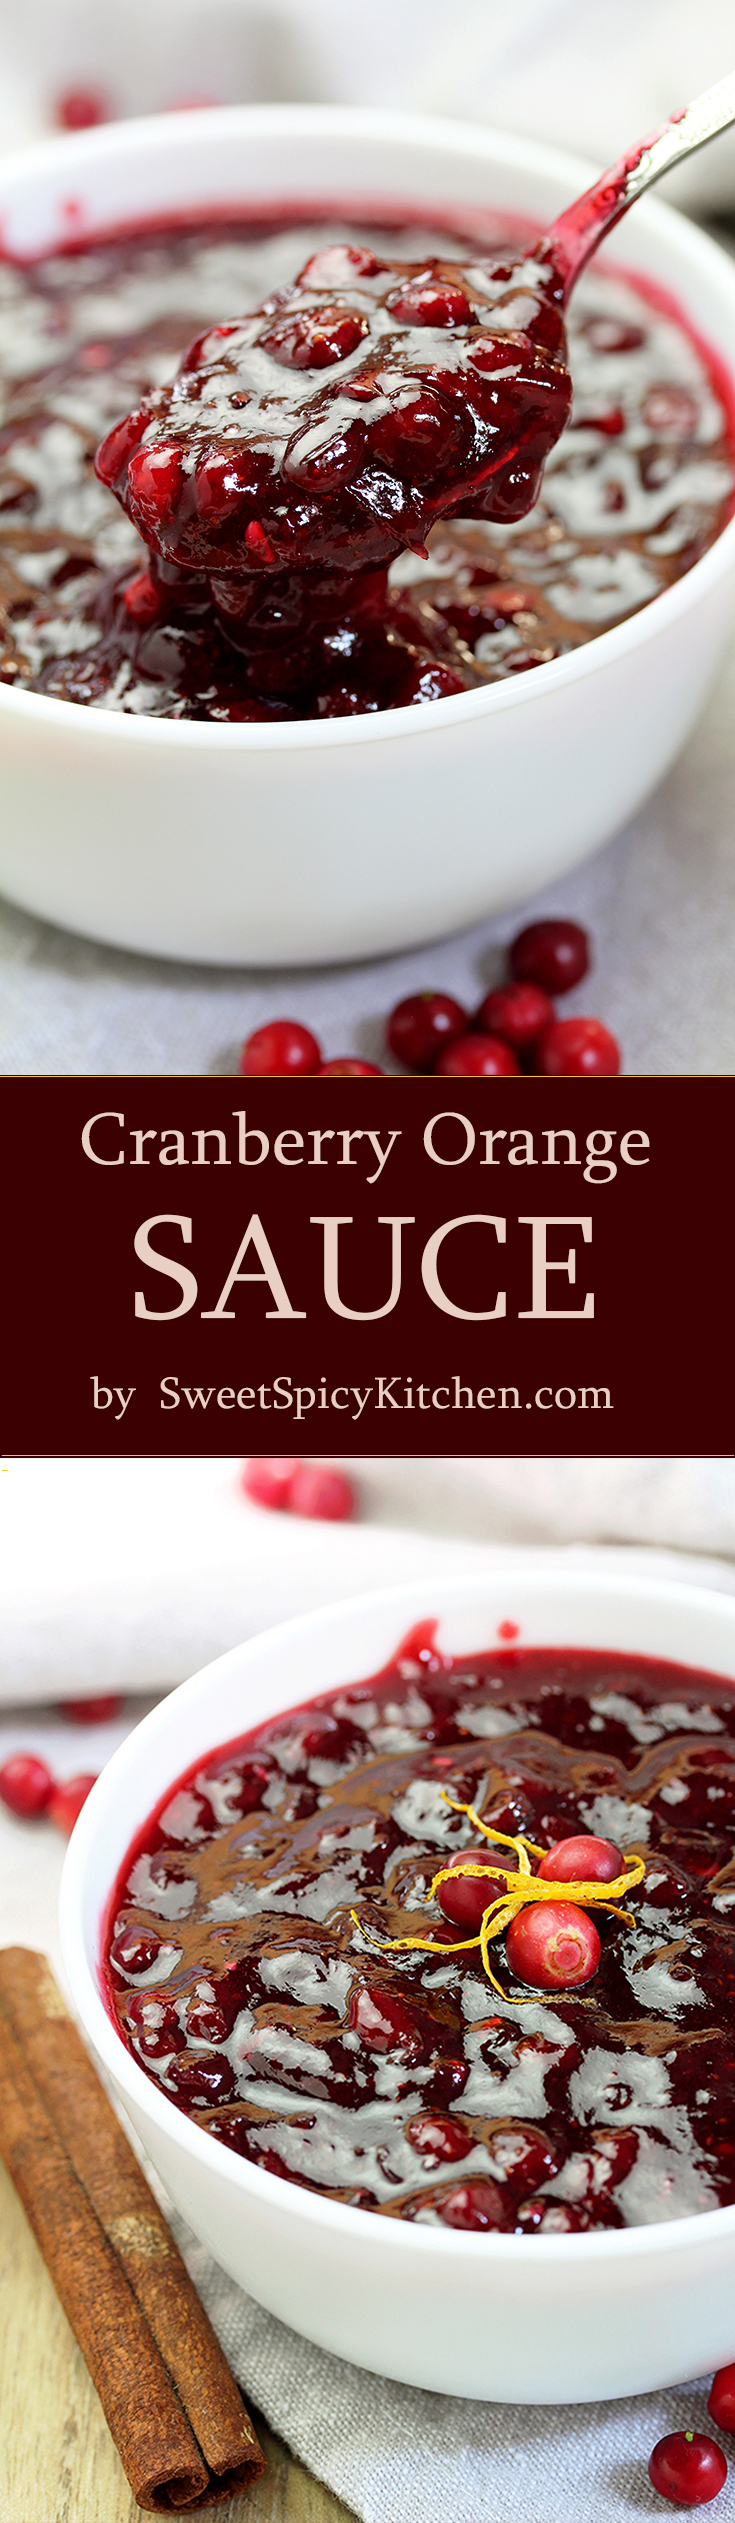 Here is the recipe for my special Cranberry Orange Sauce. This homemade sauce is so quick and easy to make. You'll love it with a piece of turkey for Thanksgiving